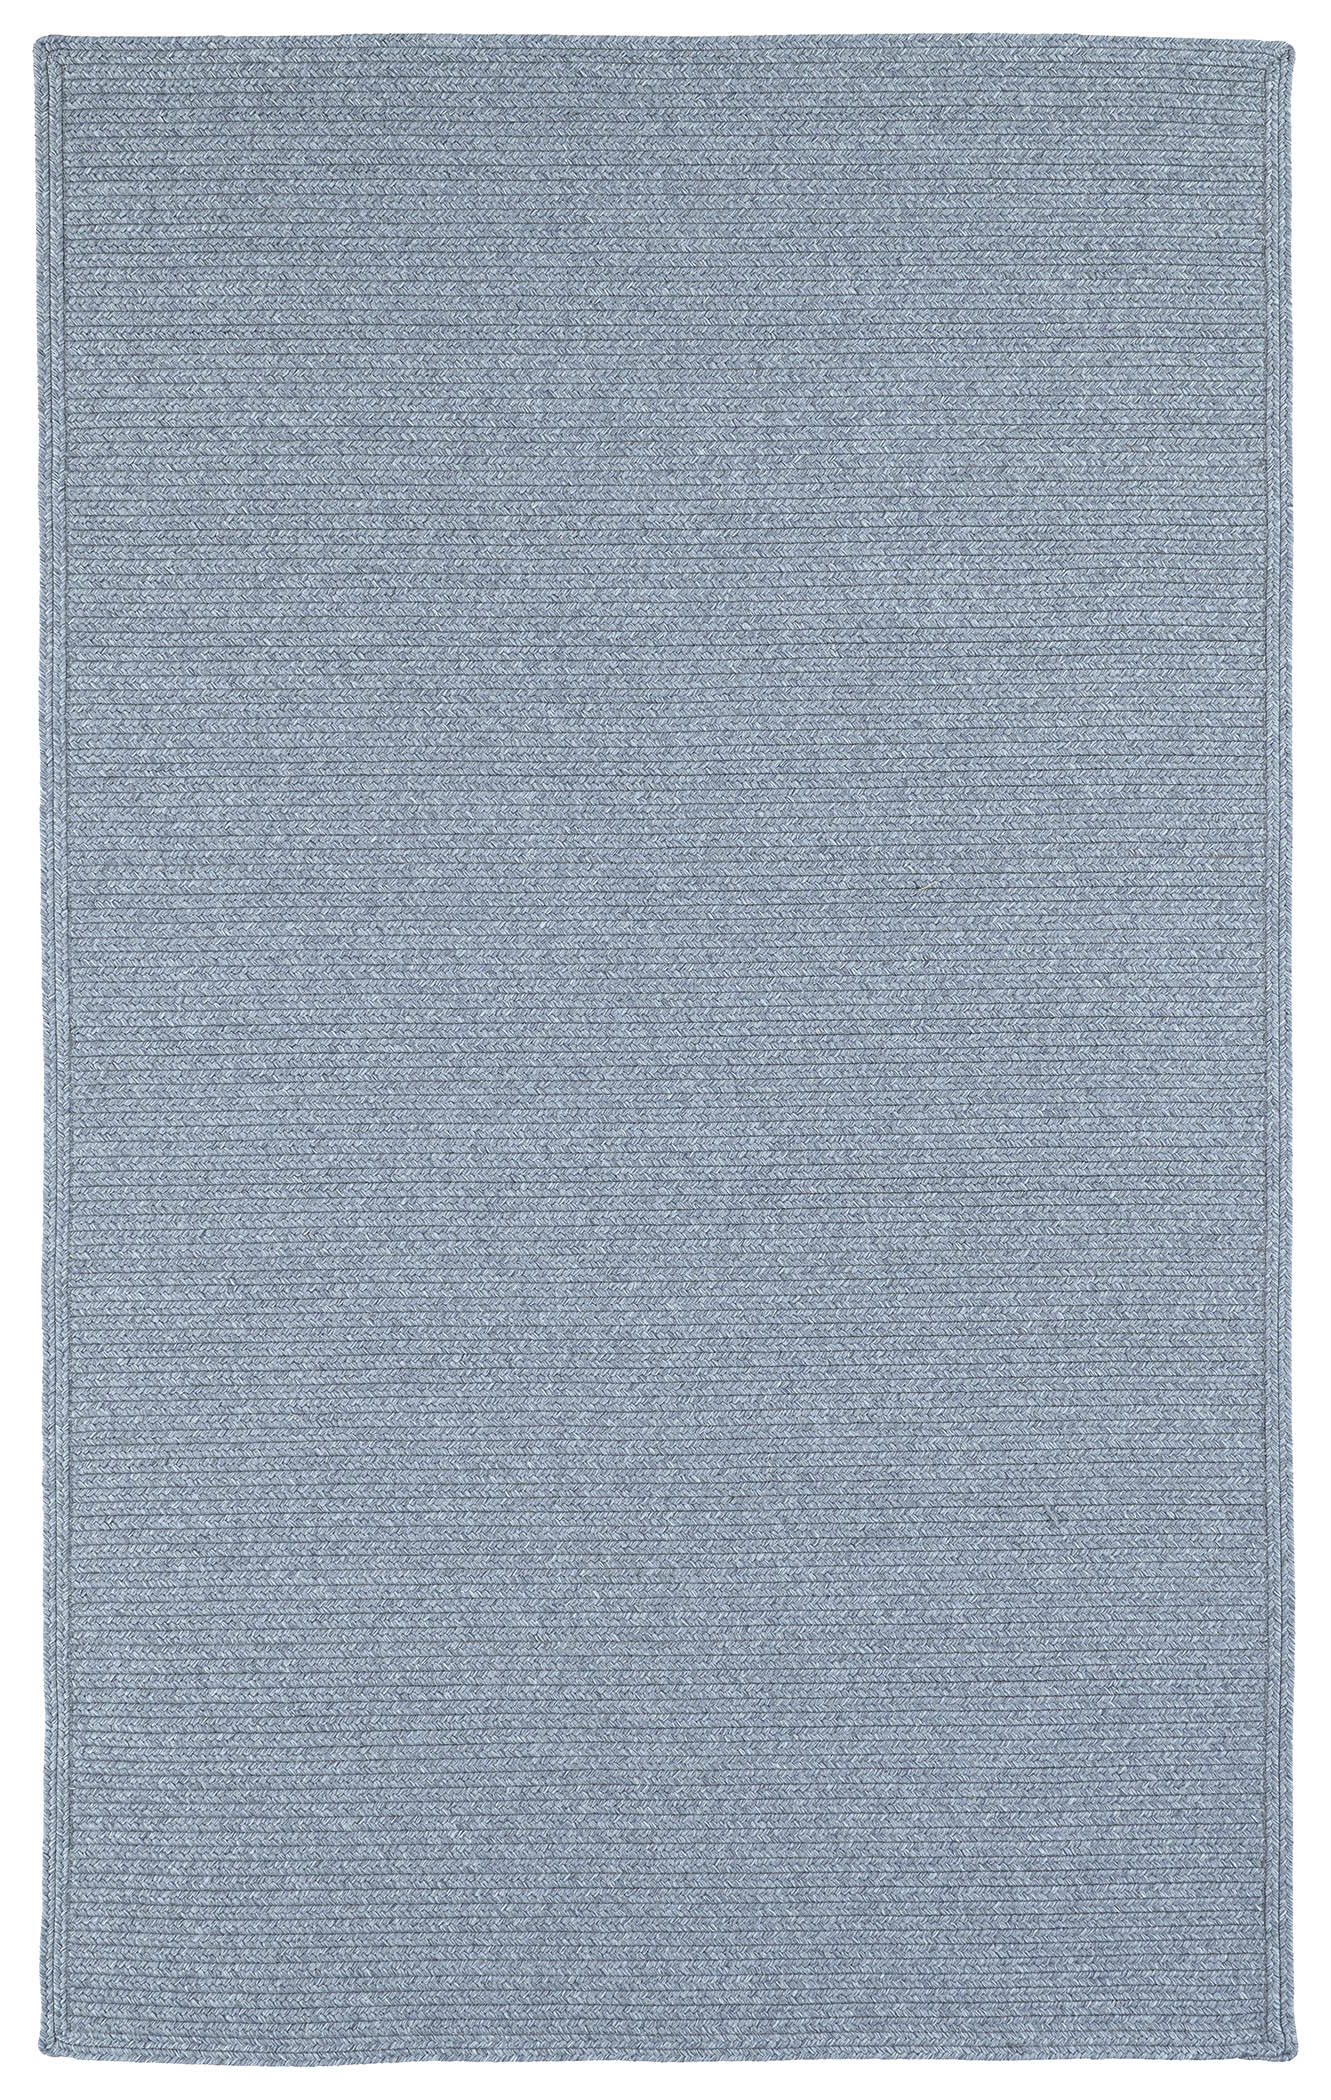 Bikini 3020 Azure 66 Outdoor Rug by Kaleen